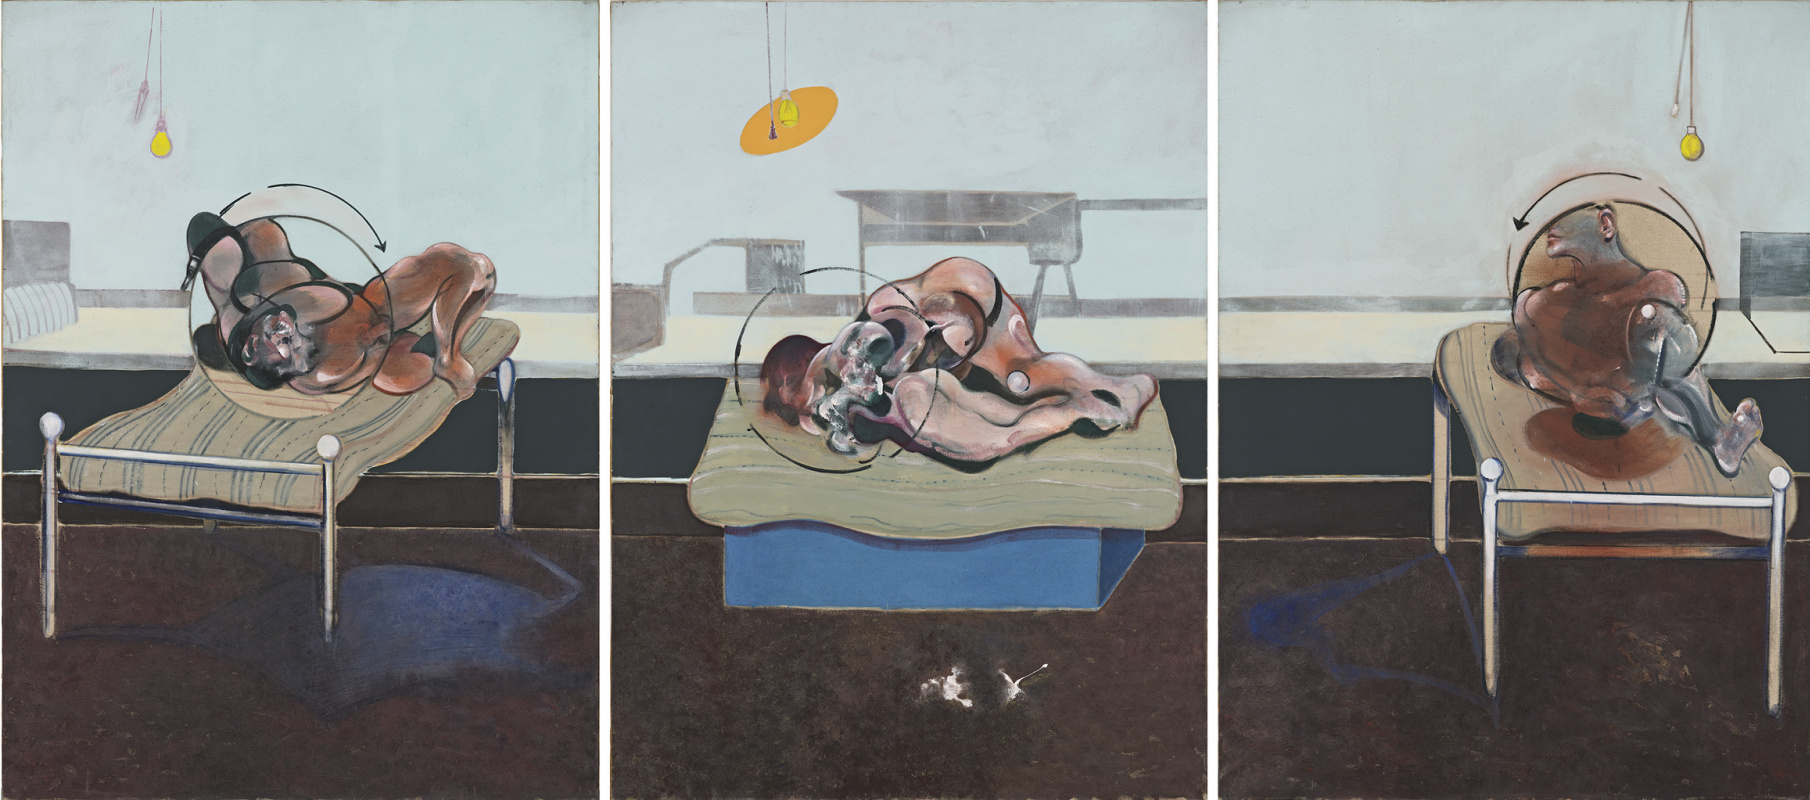 Francis Bacon. Three studies for figures in bed